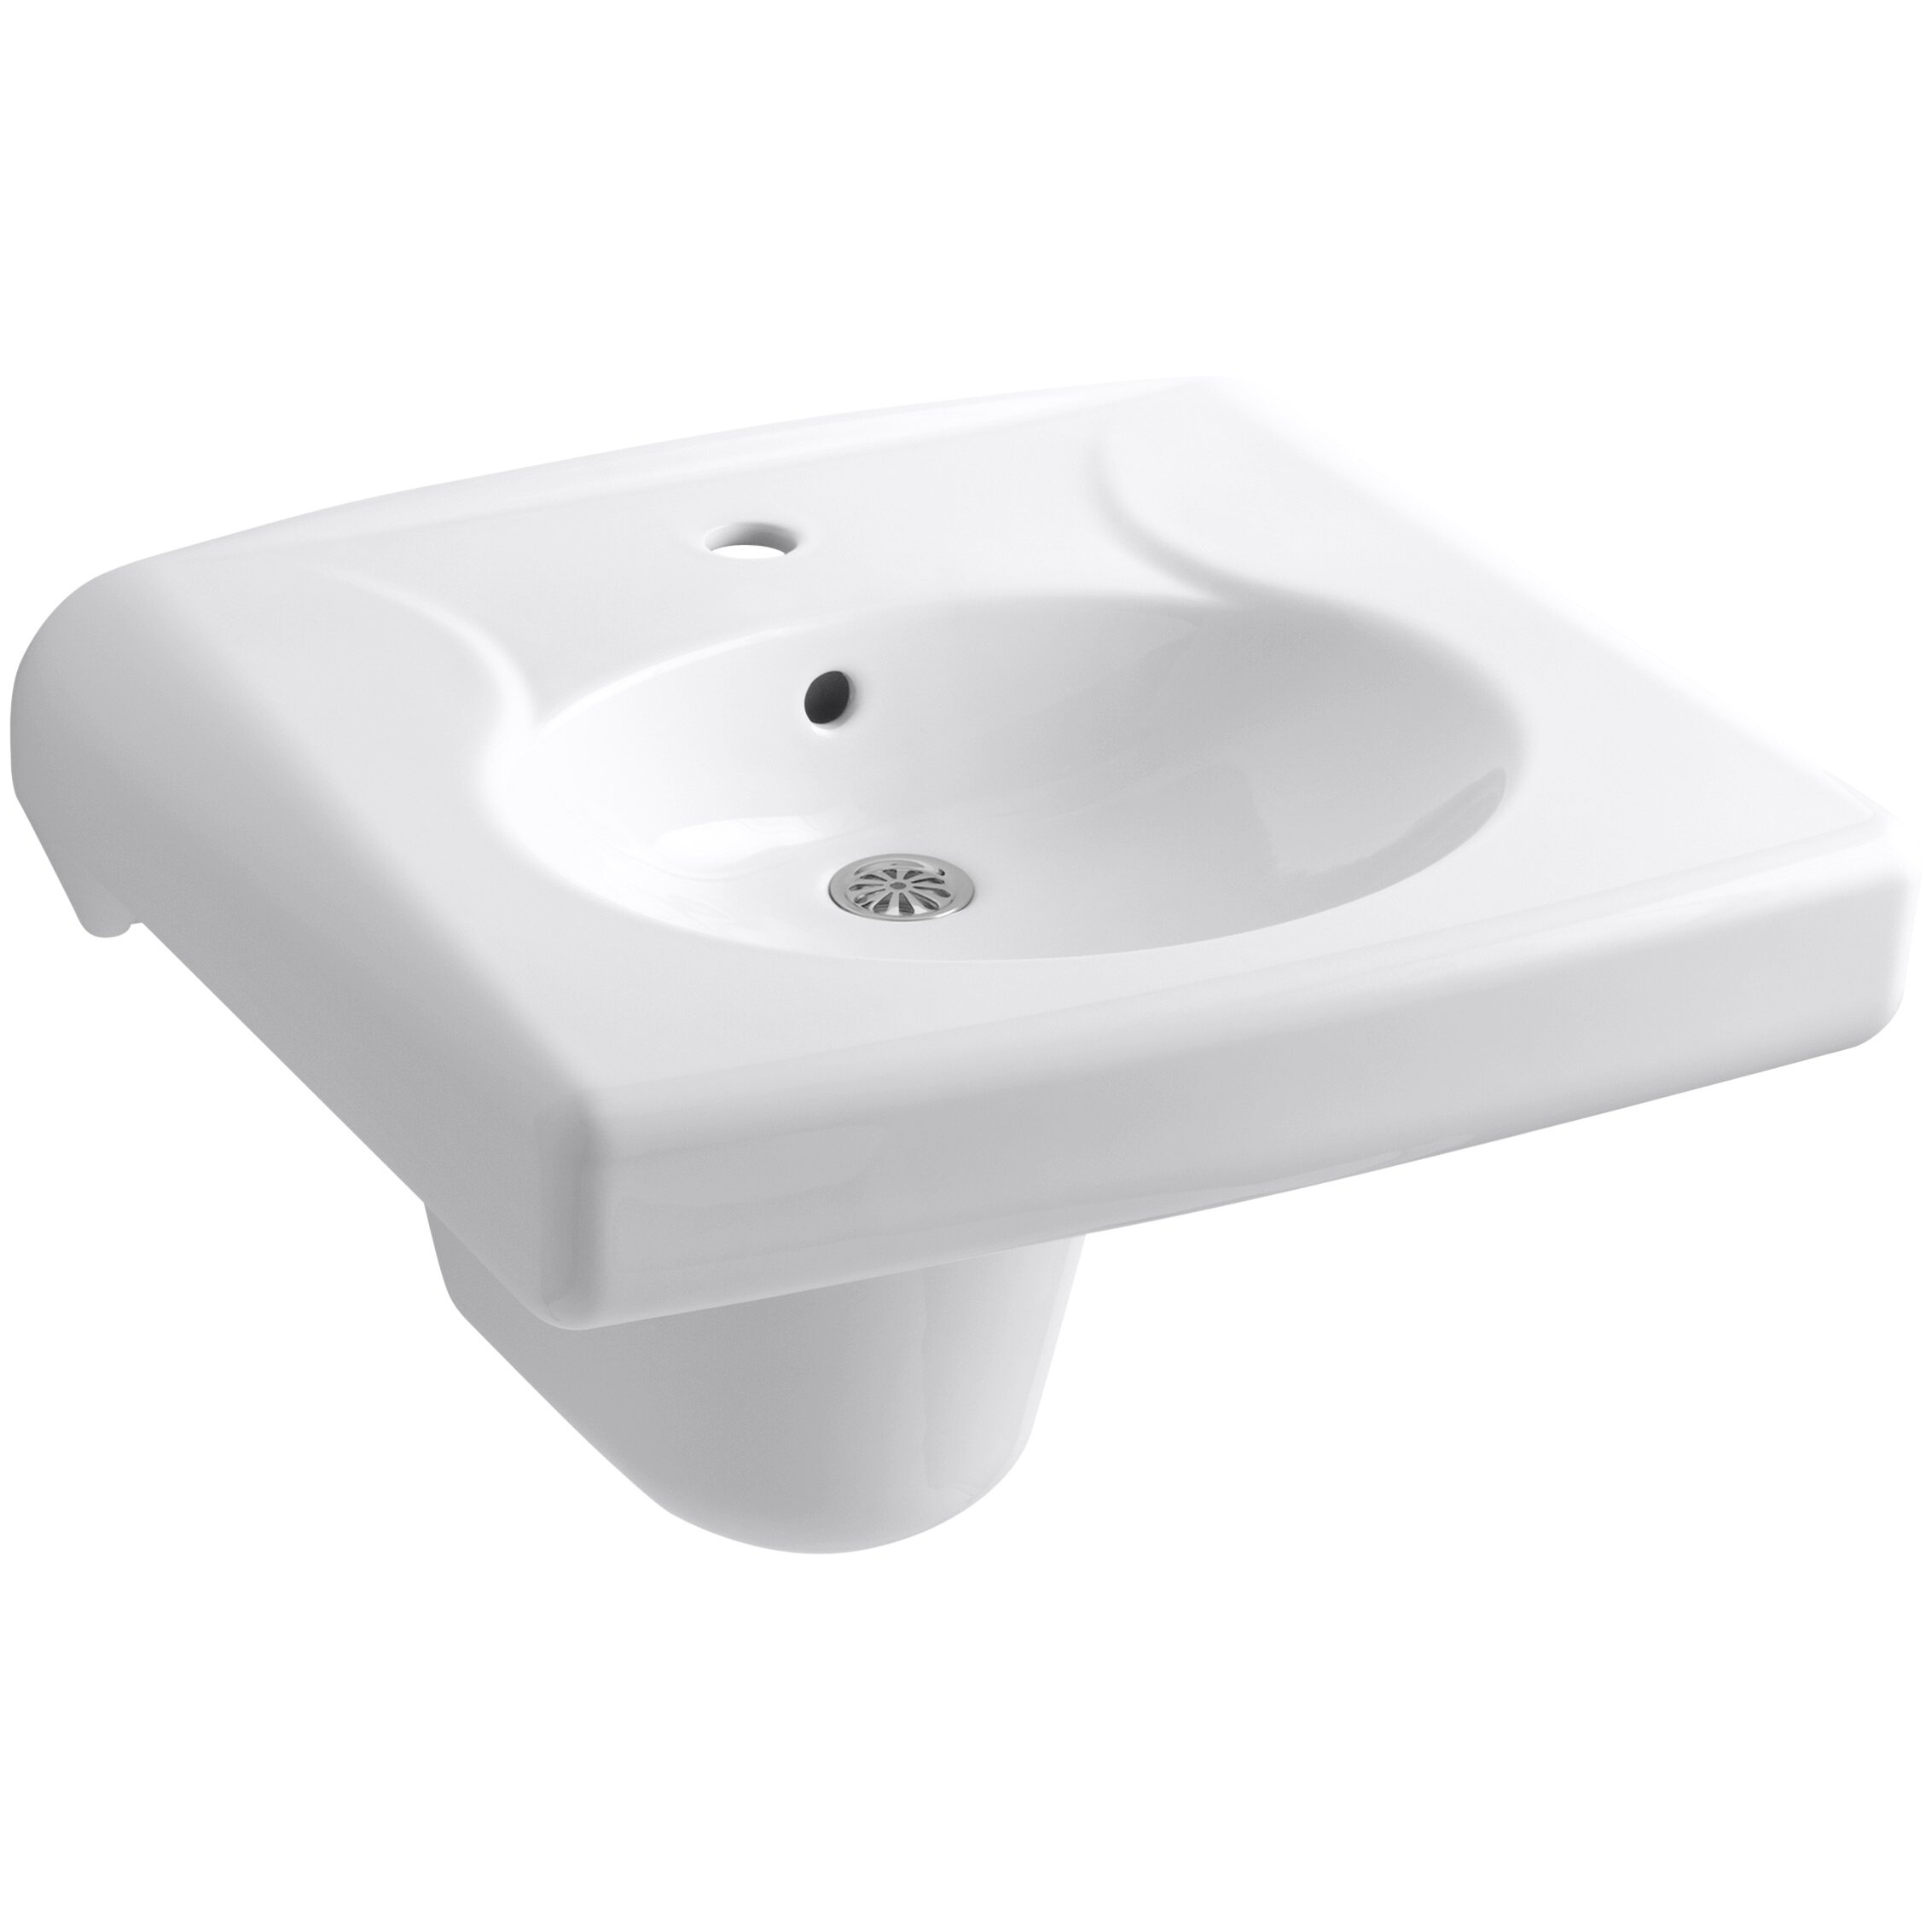 Wall Mounted Or Concealed Carrier Arm Mounted Commercial Bathroom Sink